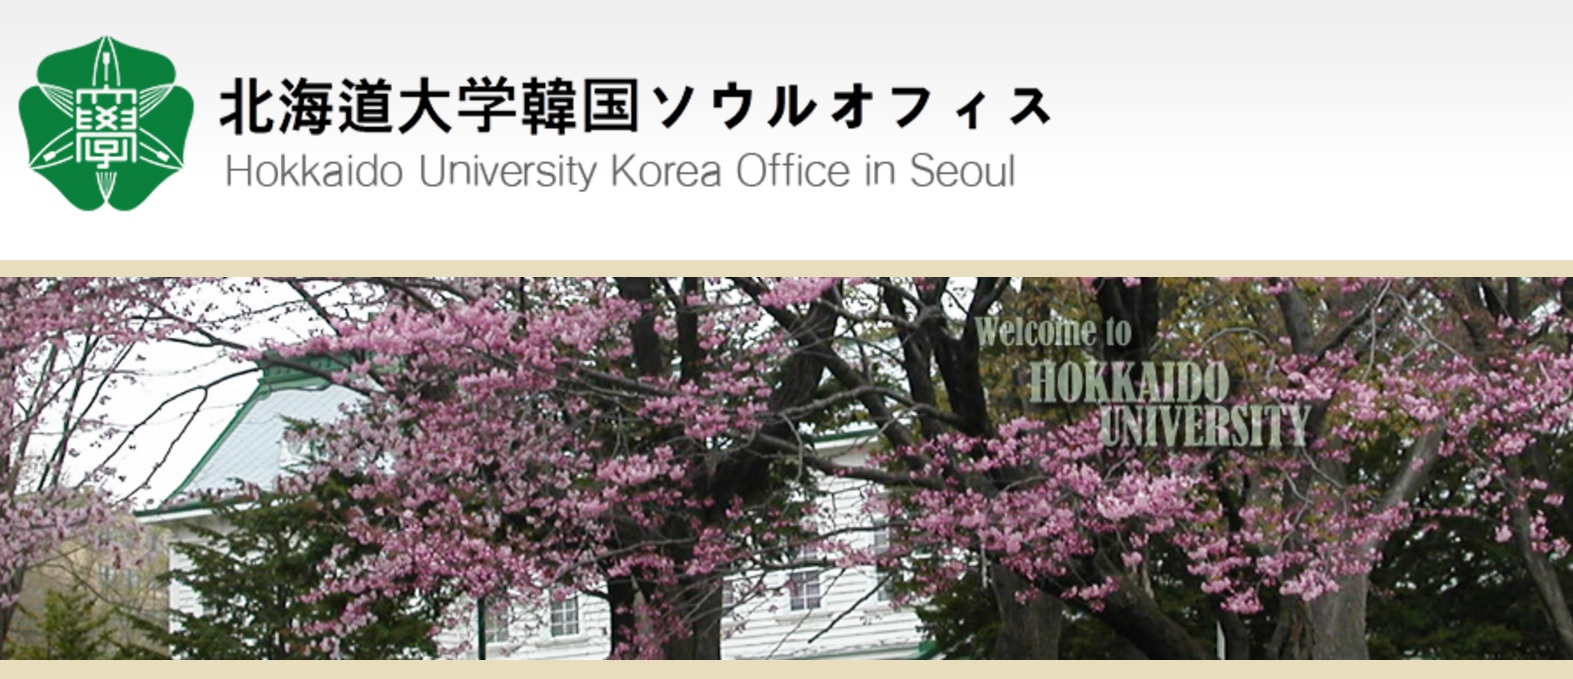 The top banner for the website of Korea Office in Seoul